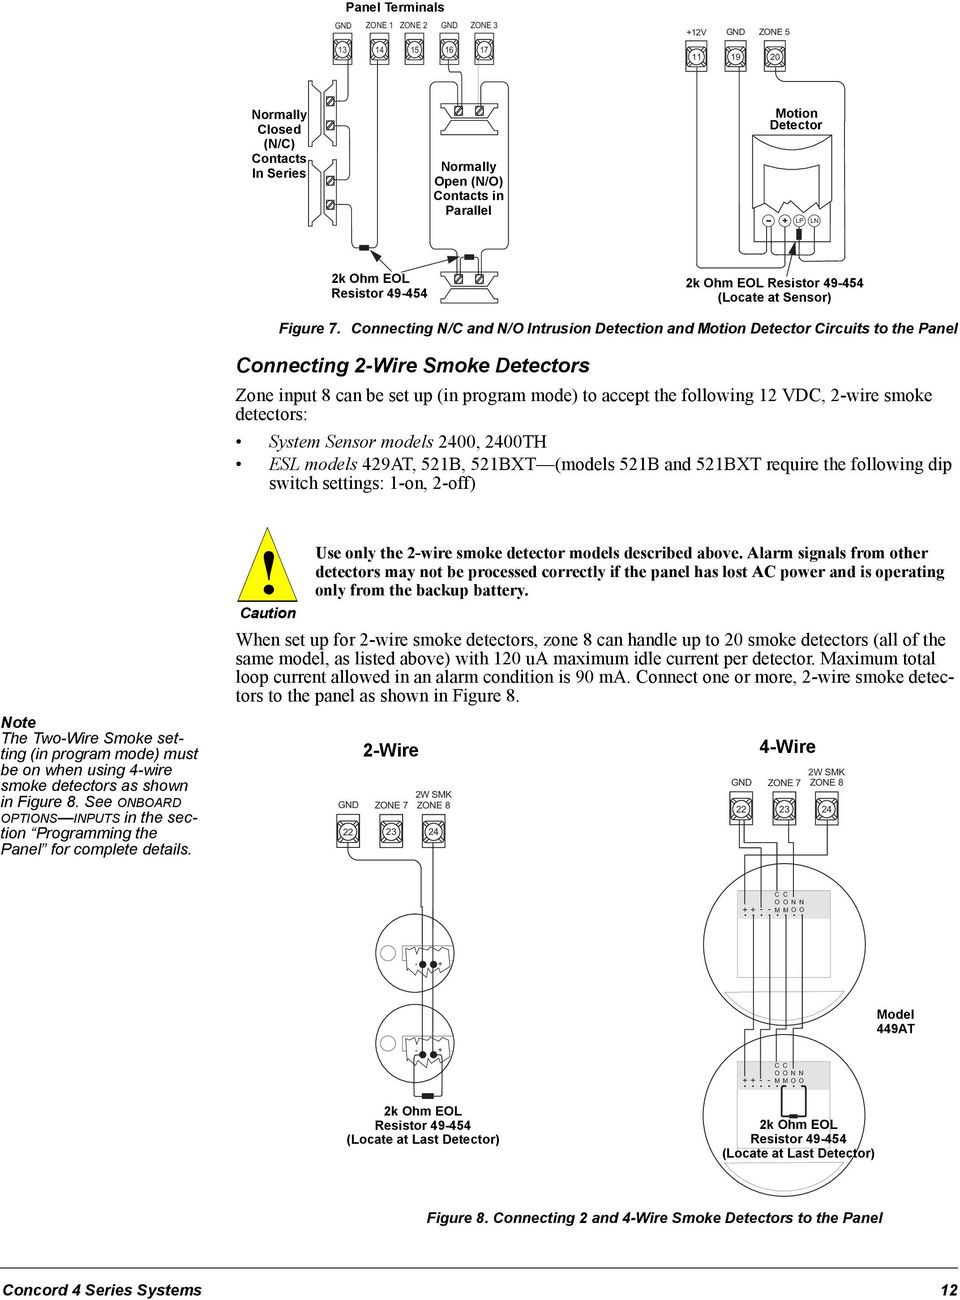 medium resolution of concord 4 series security systems pdf49 454 locate at sensor figure 7